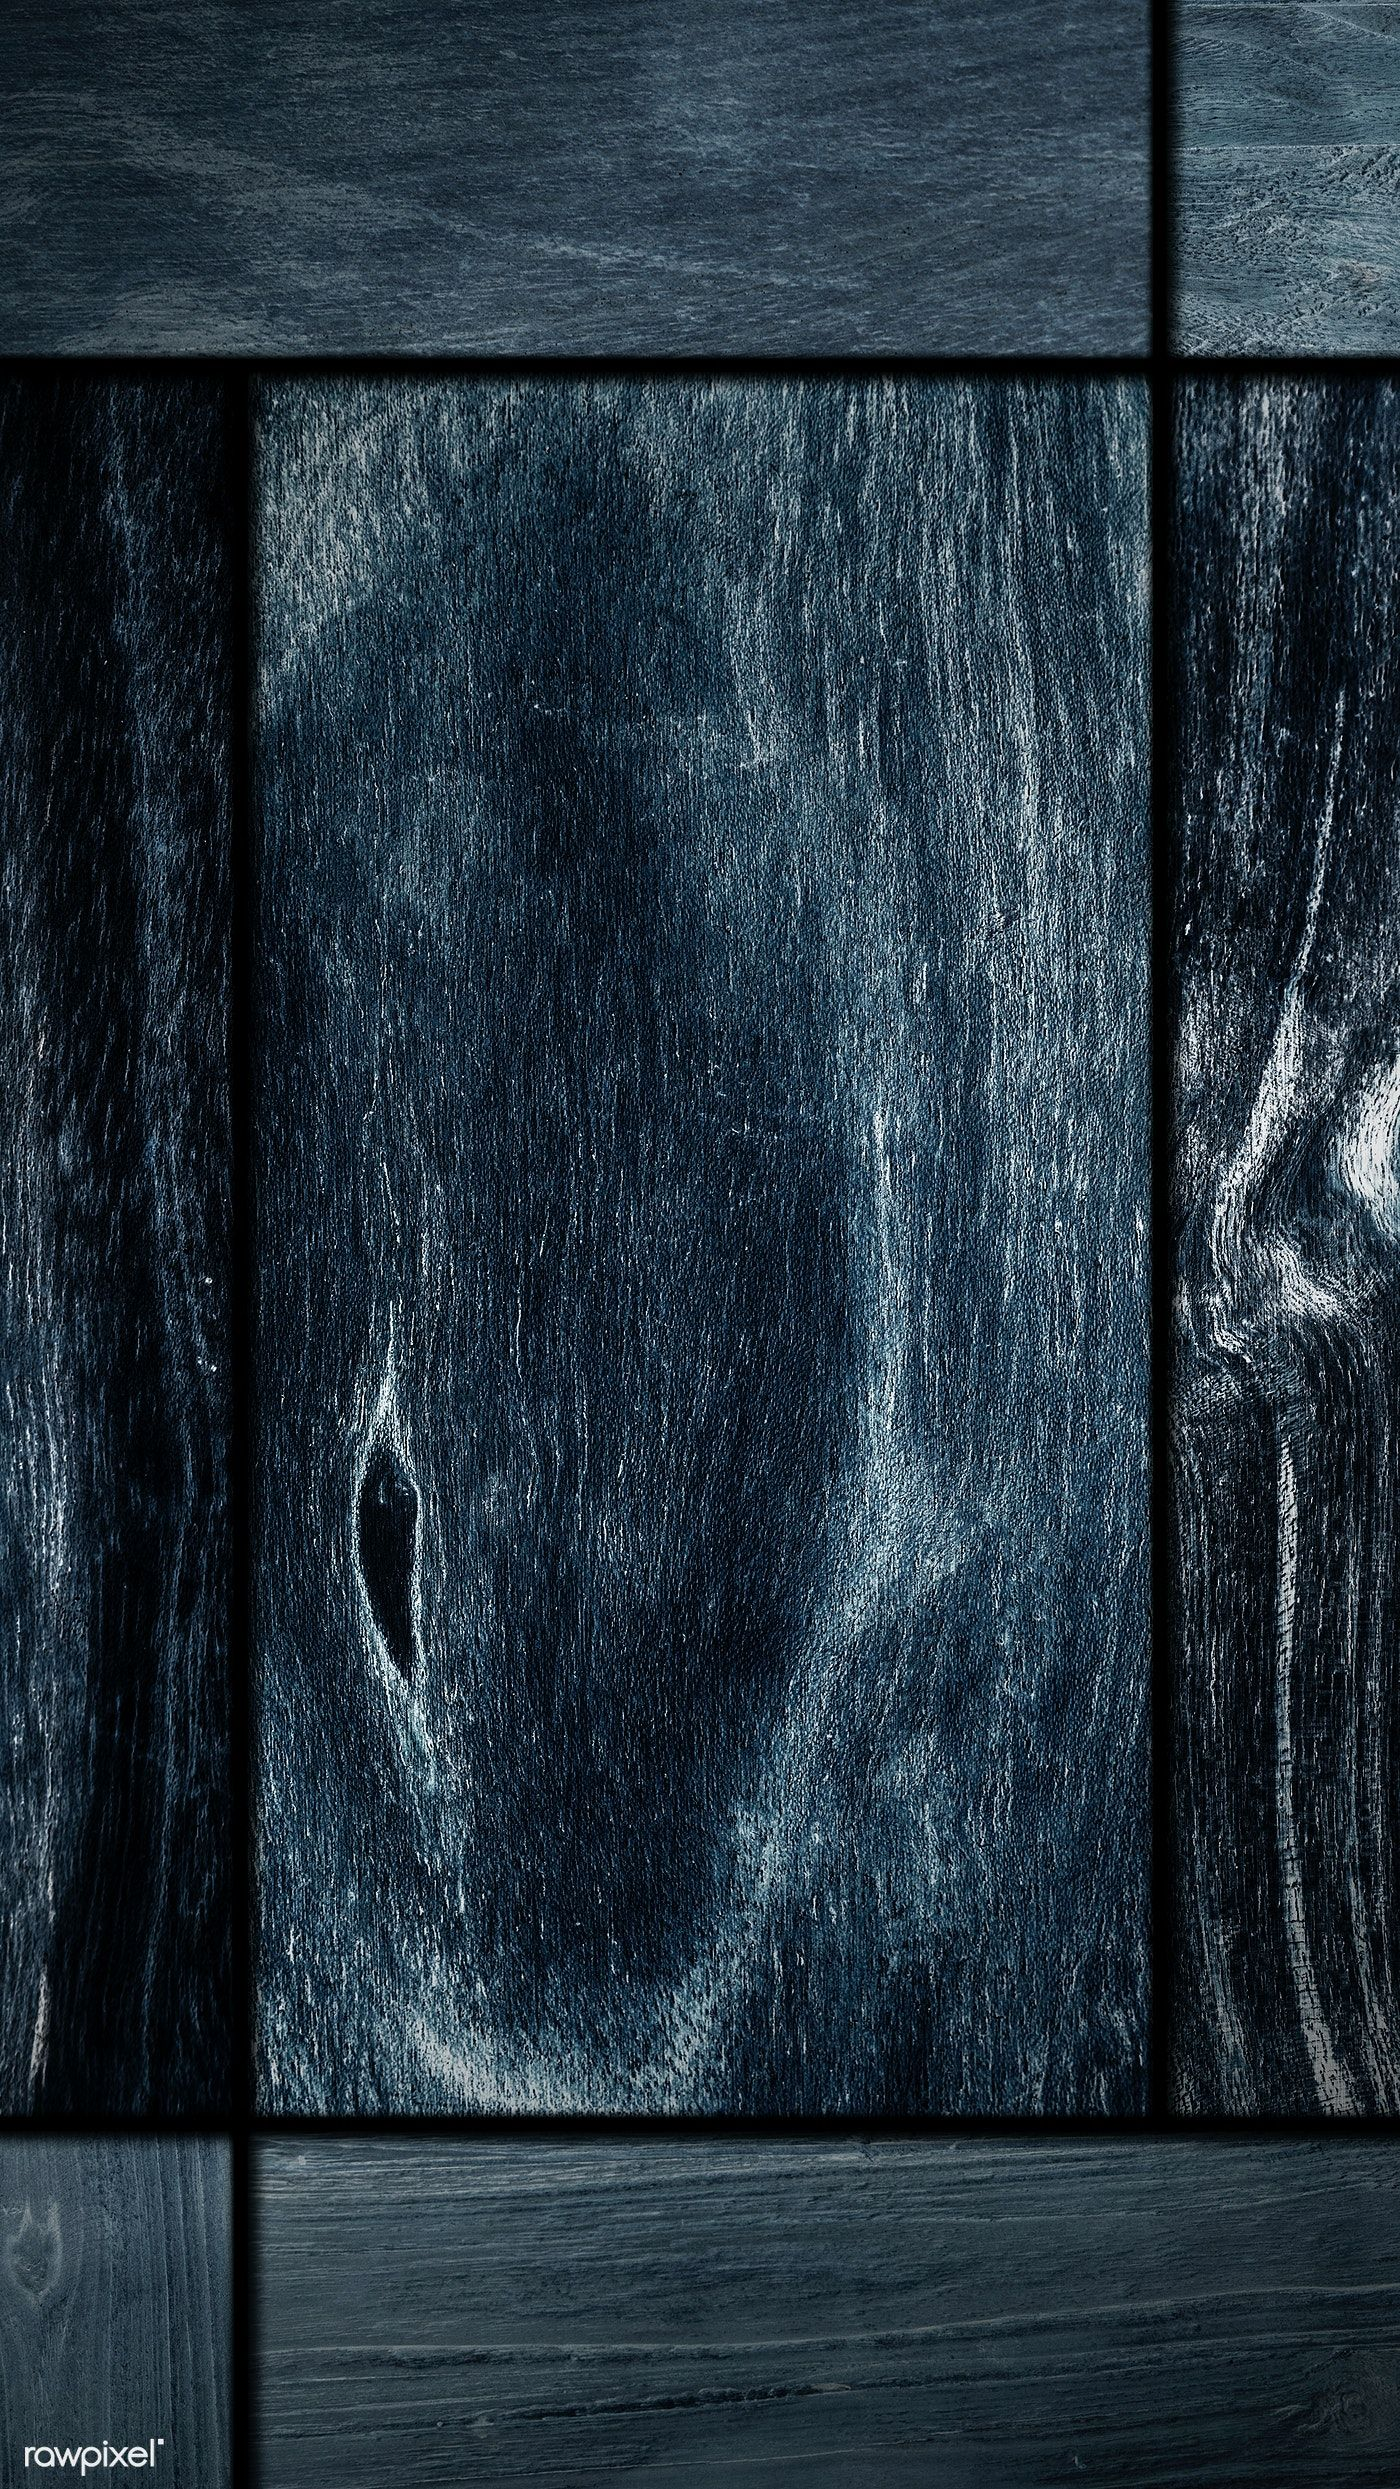 Download free image of Blue wood textured mobile wallpaper background